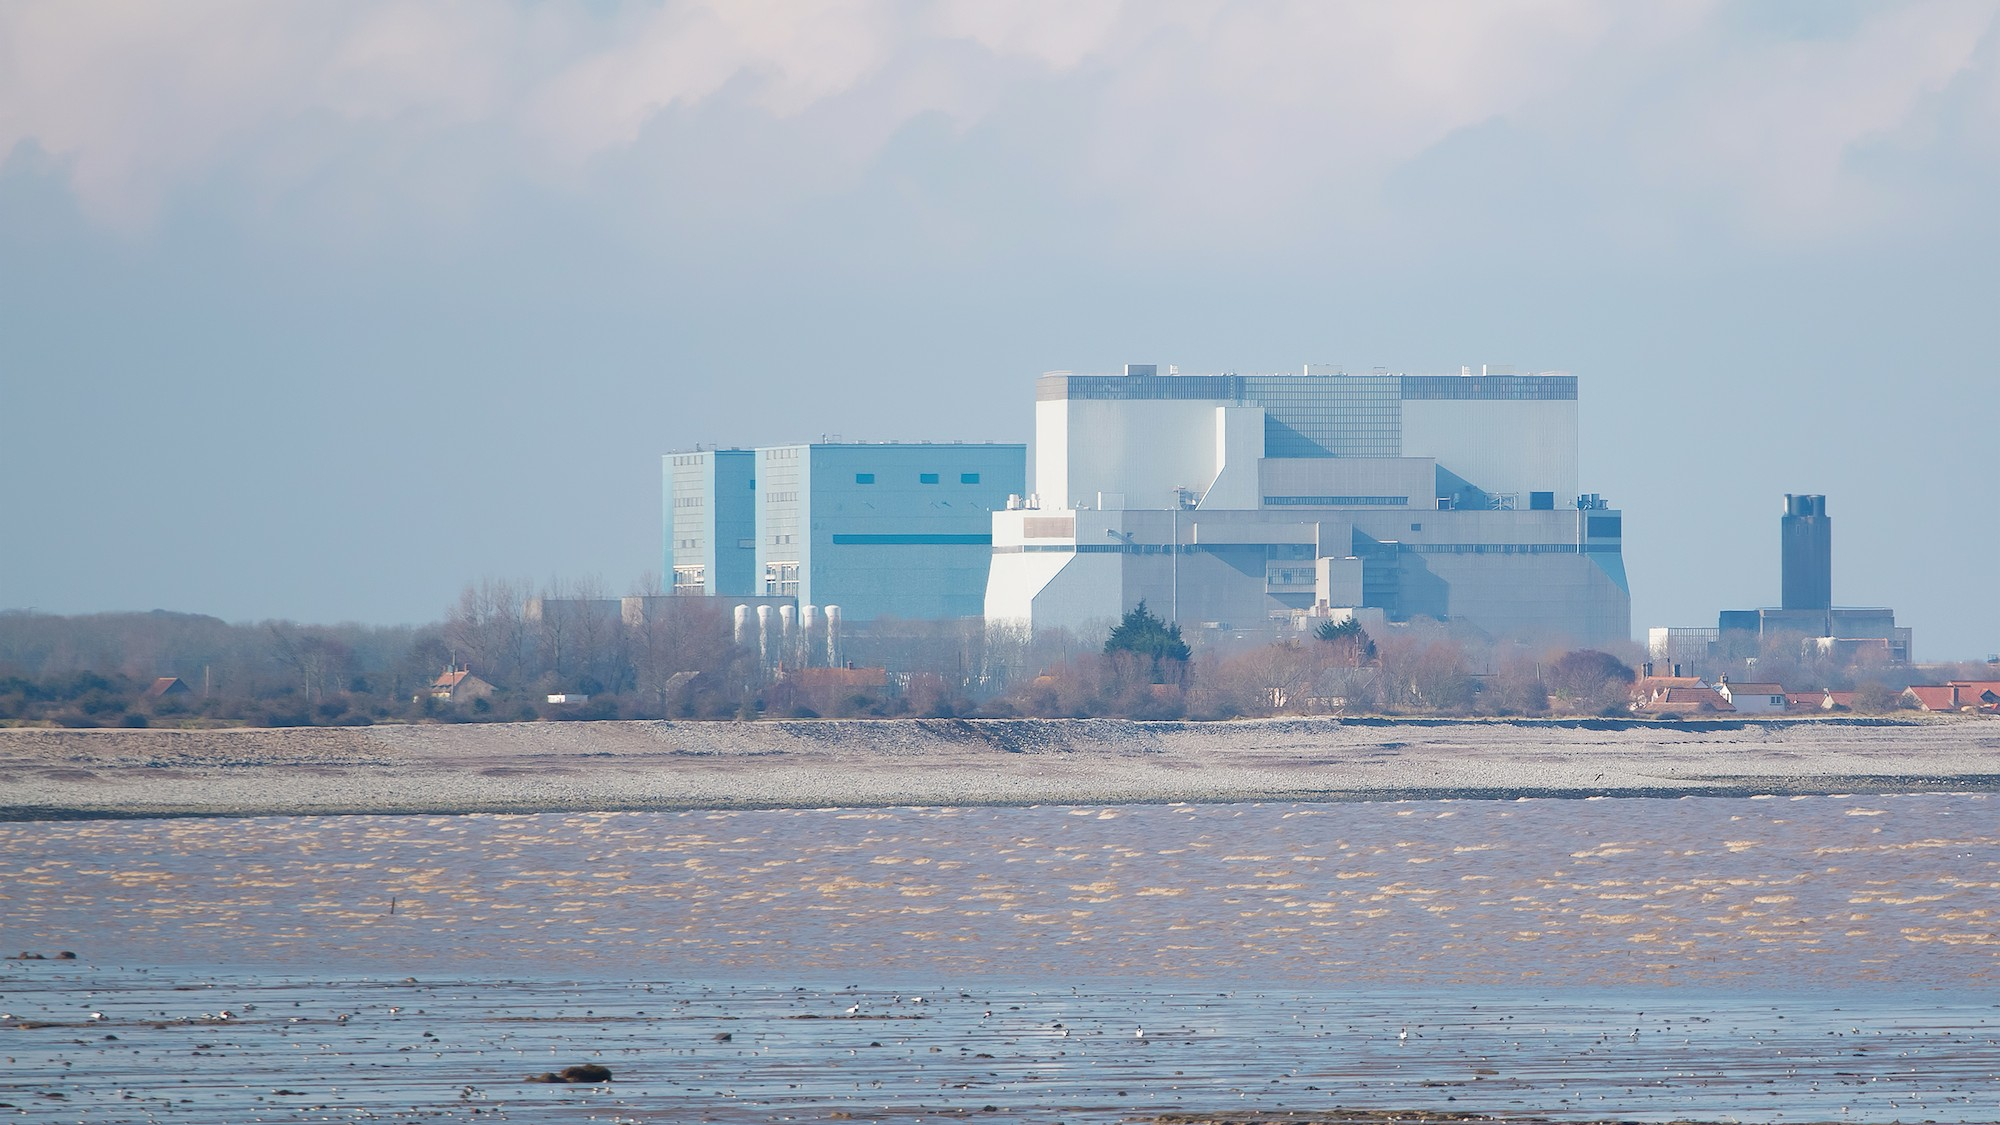 British Government Puts Brakes on UK's First New Nuclear Power Plant in 20 Years